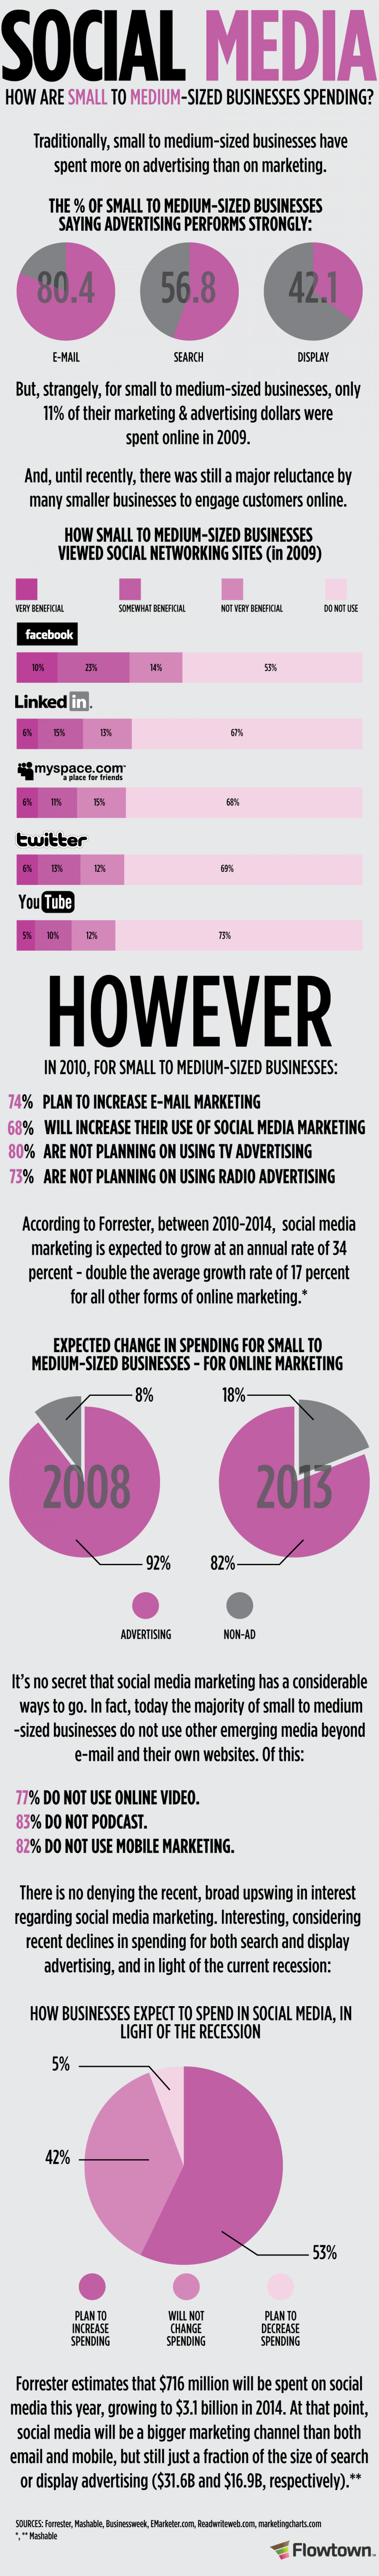 How Businesses Spend Their Social Media Dollars Infographic